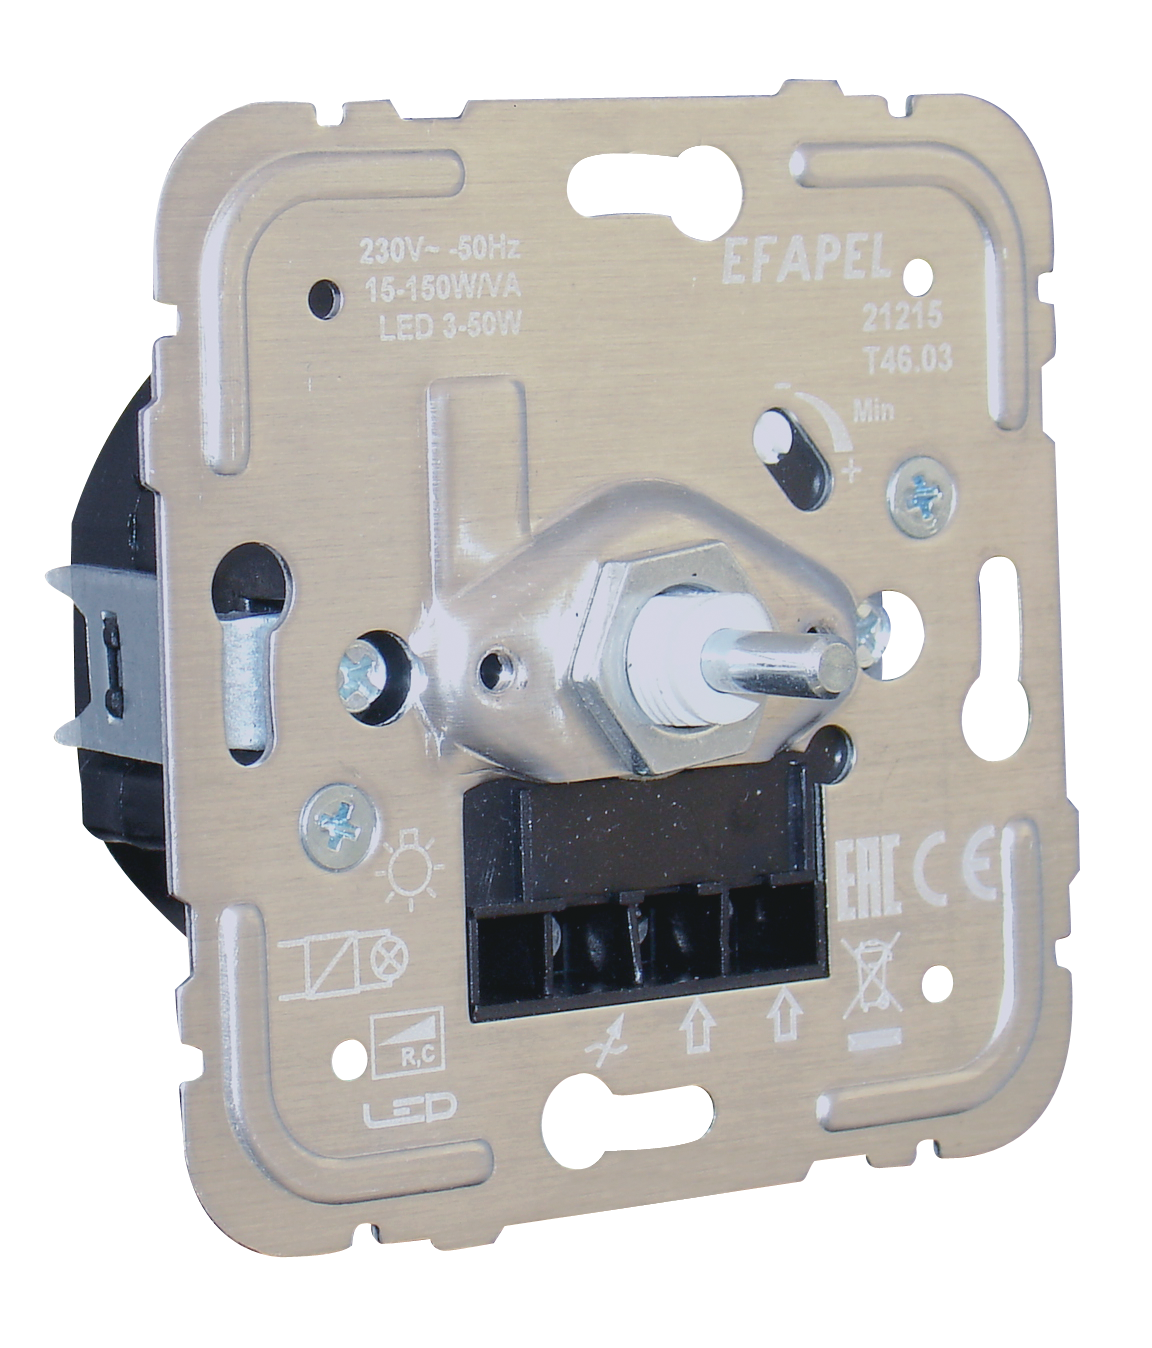 Electronic Dimmer/Two-way Switch for Low Power Lamps - 150W R, C